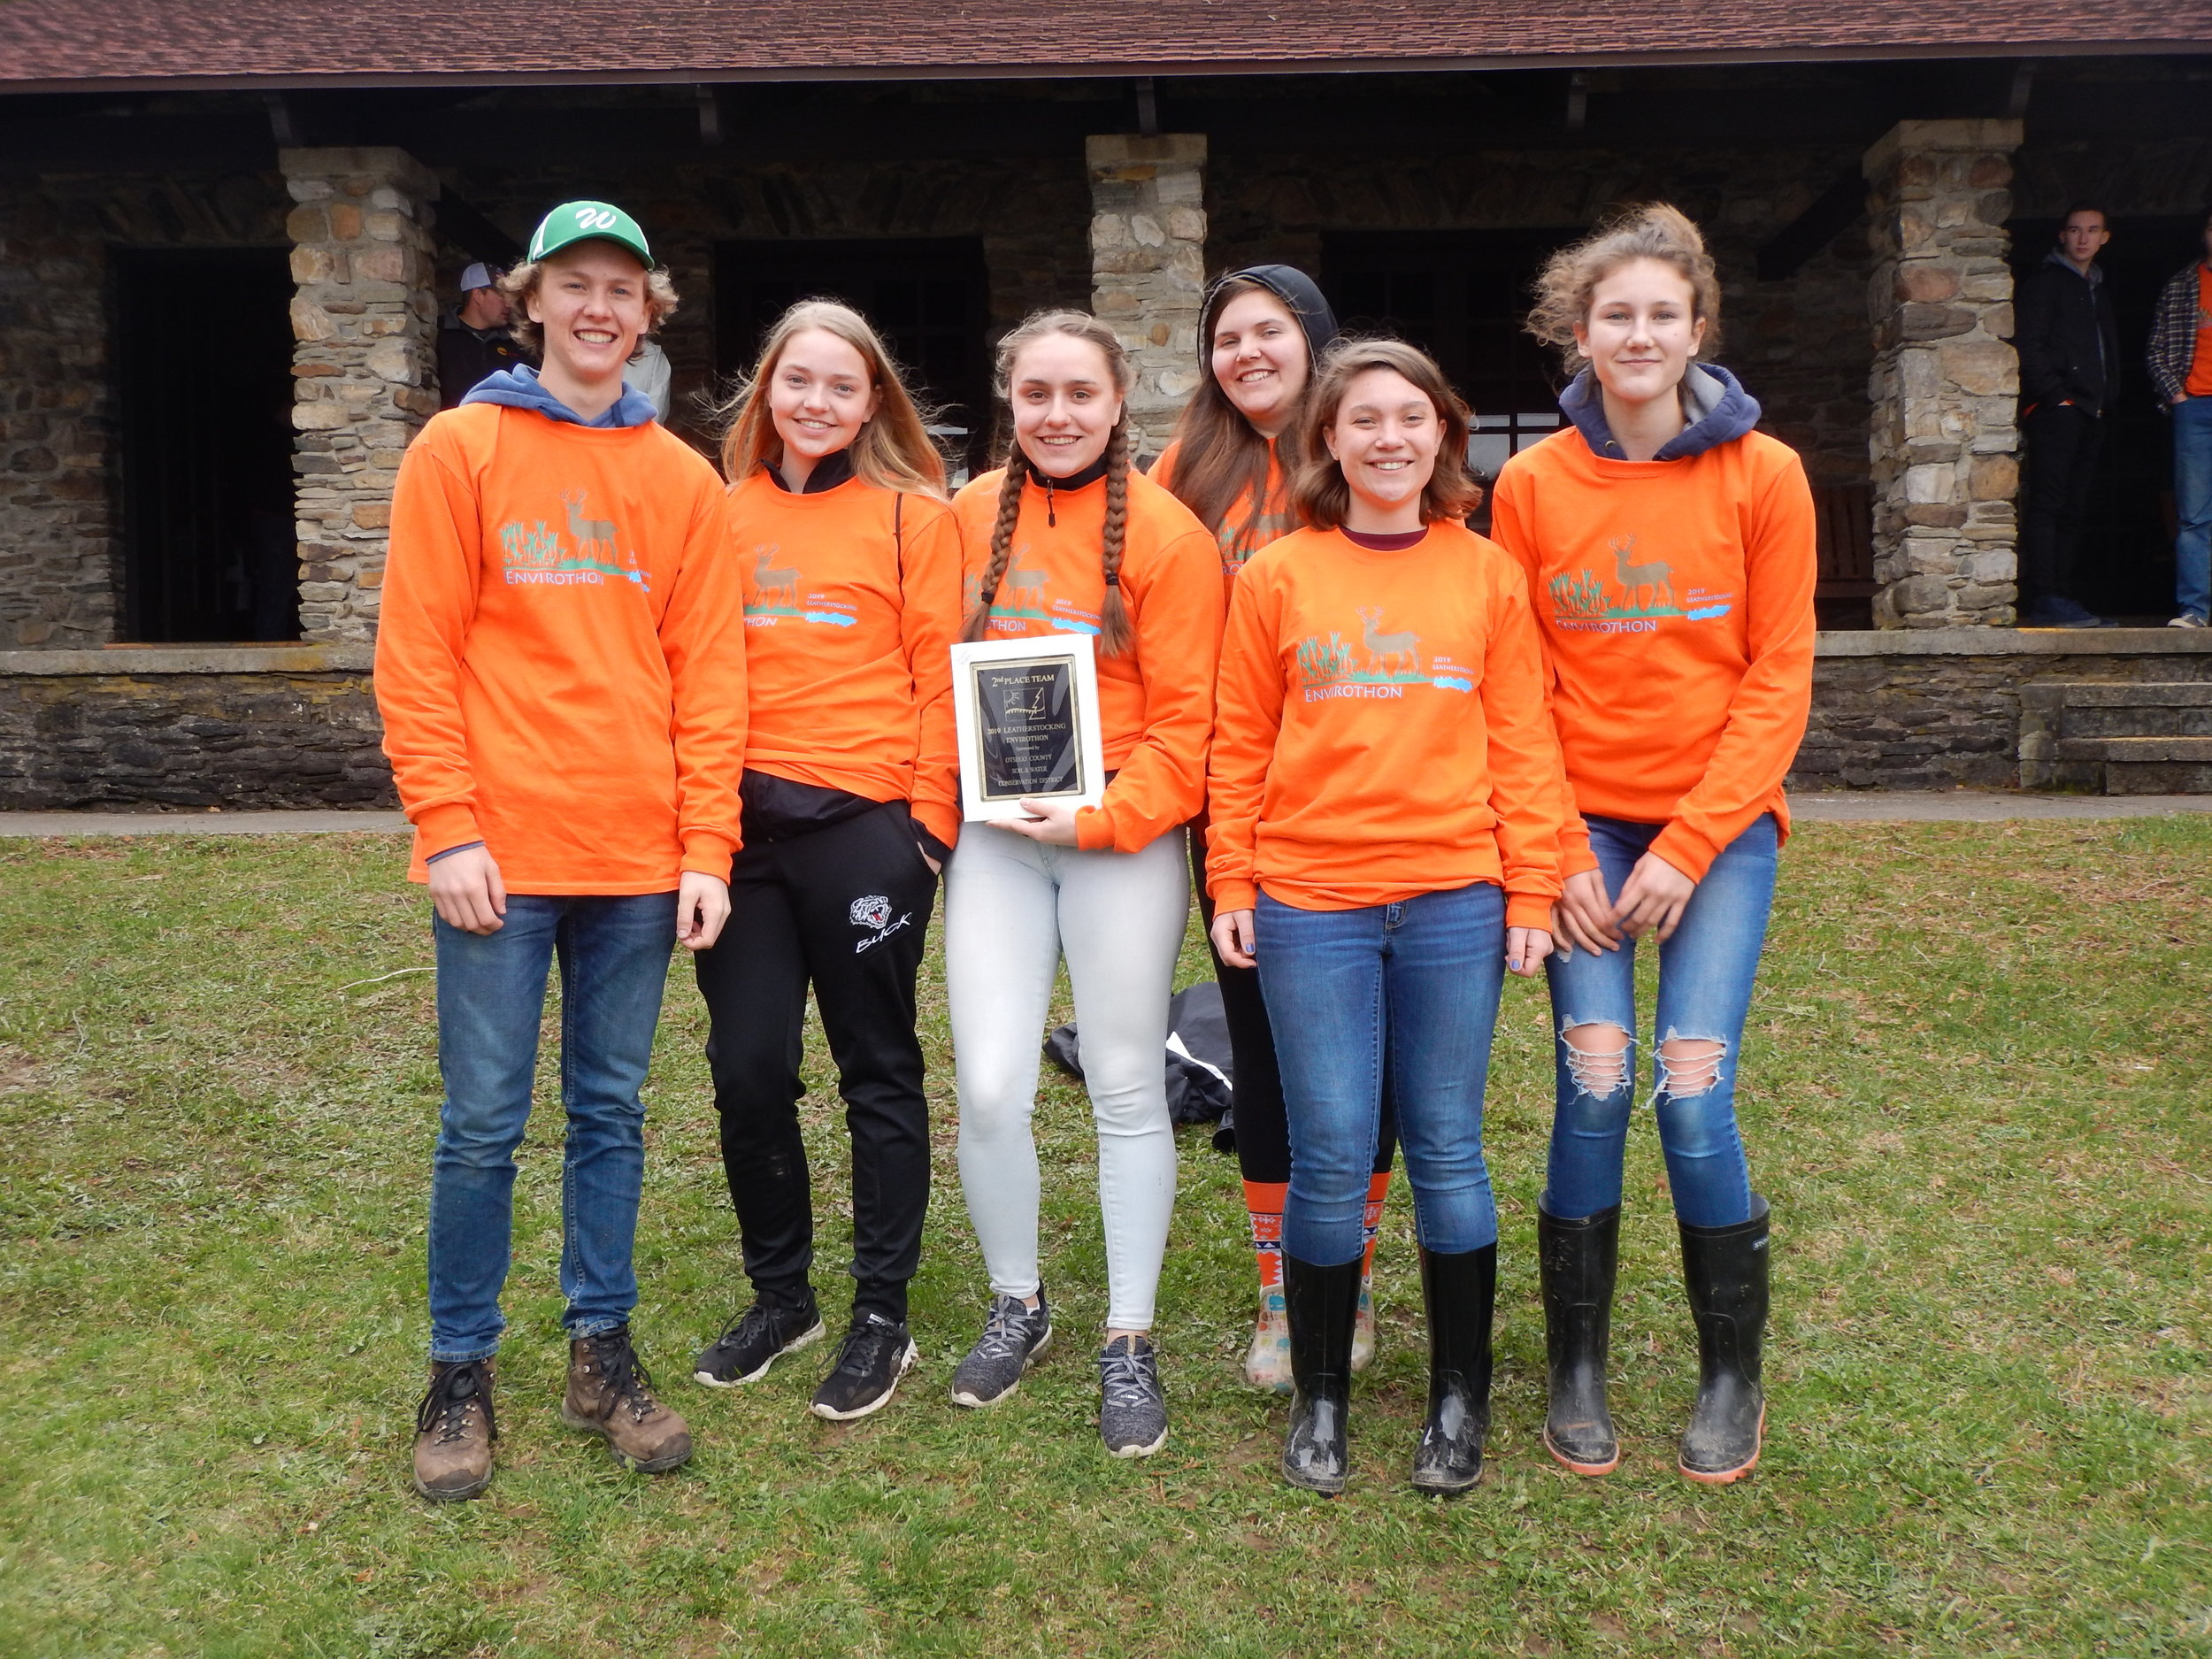 """ Worcester - Team A "" - 2019 Leatherstocking Envirothon 2nd Place Team"